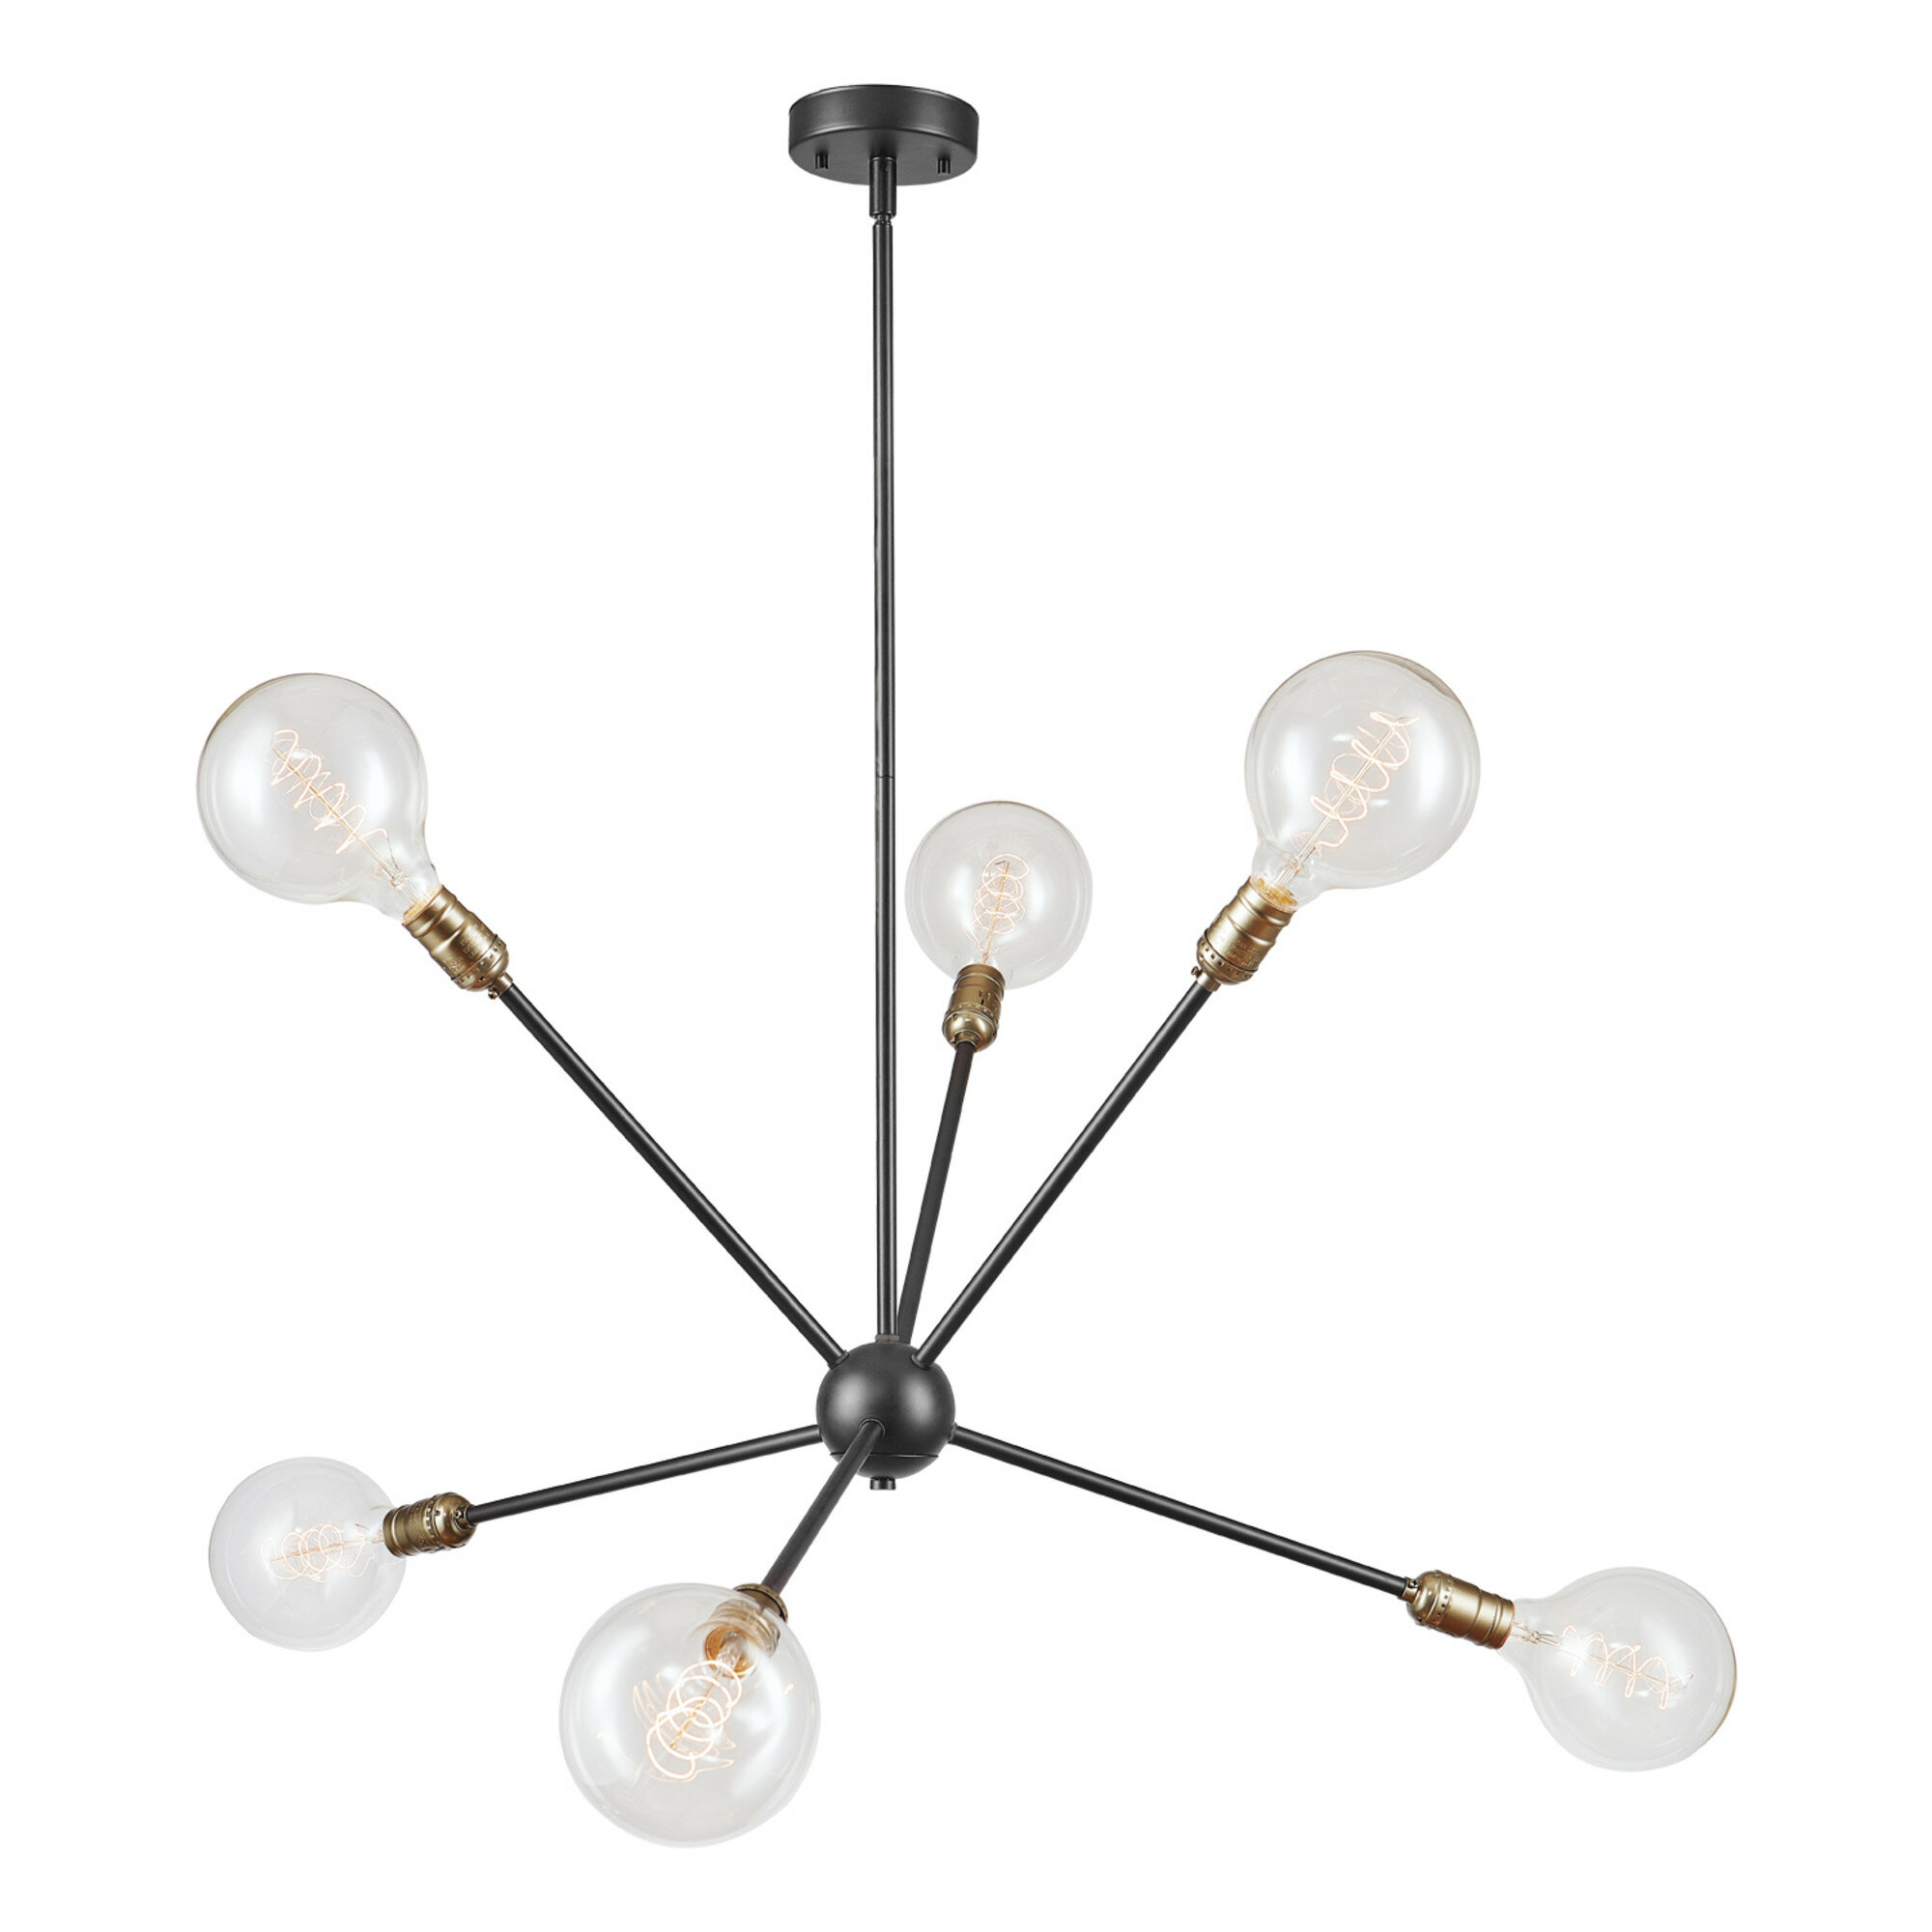 Brawner 6 Light Sputnik Chandelier Regarding Eladia 6 Light Sputnik Chandeliers (View 9 of 30)